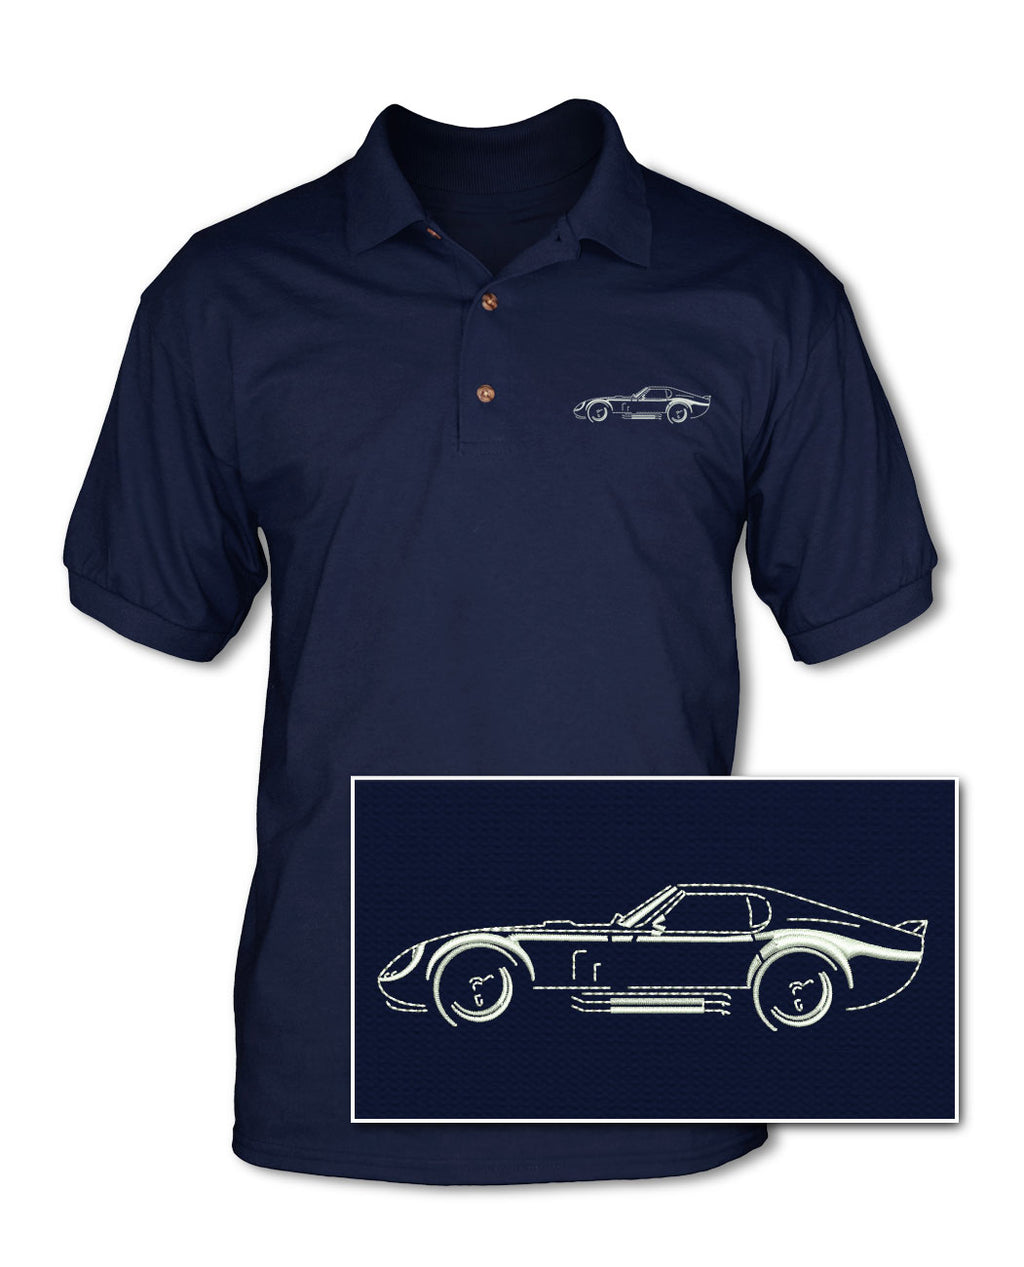 1964 Daytona Coupe Art of Light - Adult Pique Polo Shirt